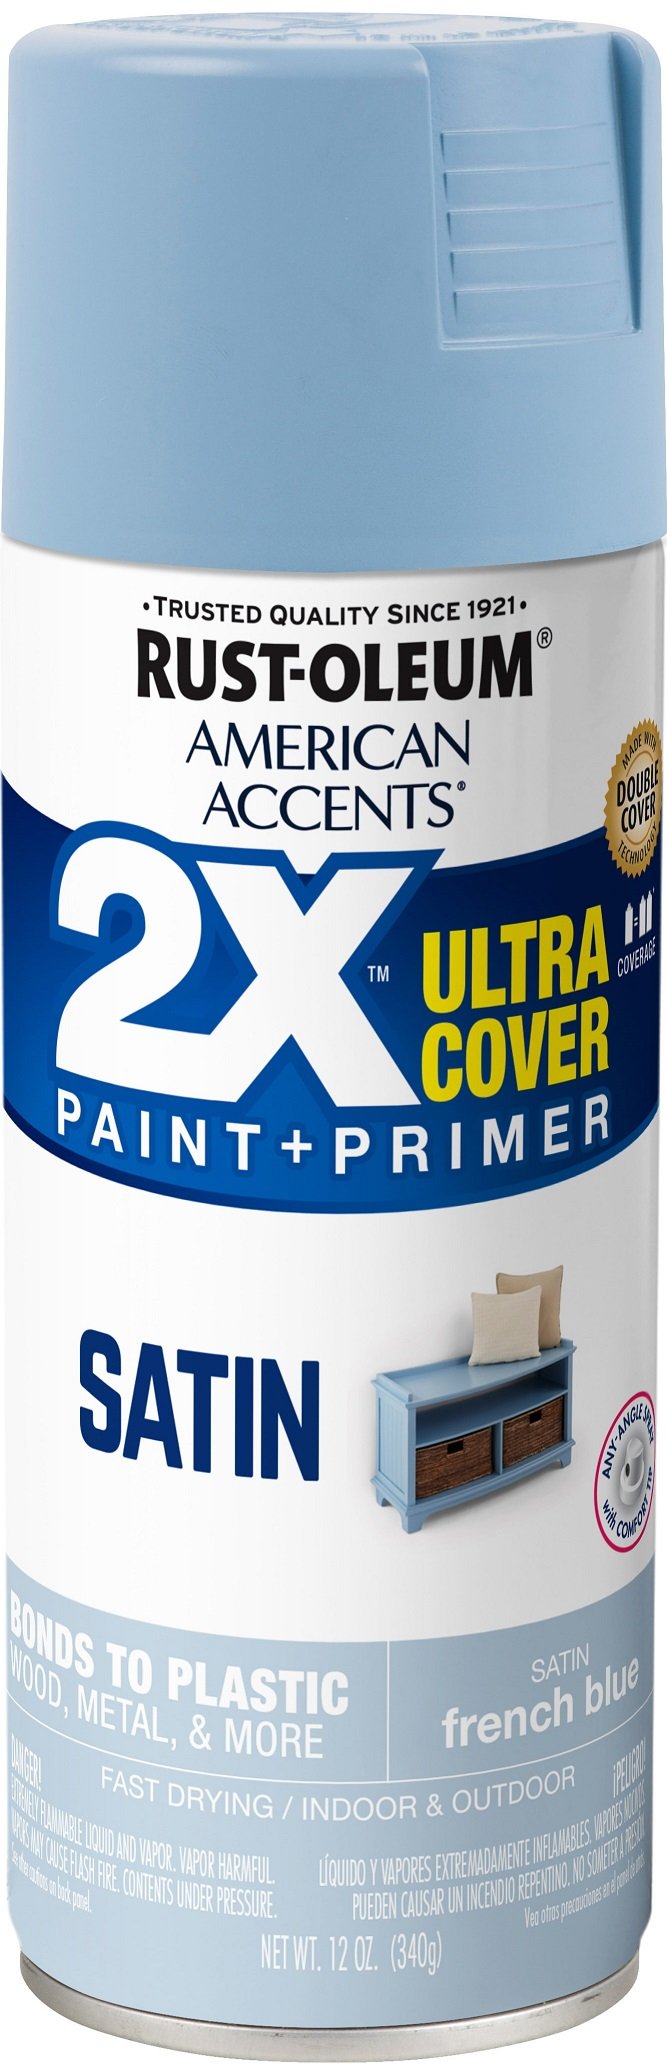 (3 Pack) Rust-Oleum American Accents Ultra Cover 2X Satin French Blue Spray Paint and Primer in 1, 12 oz